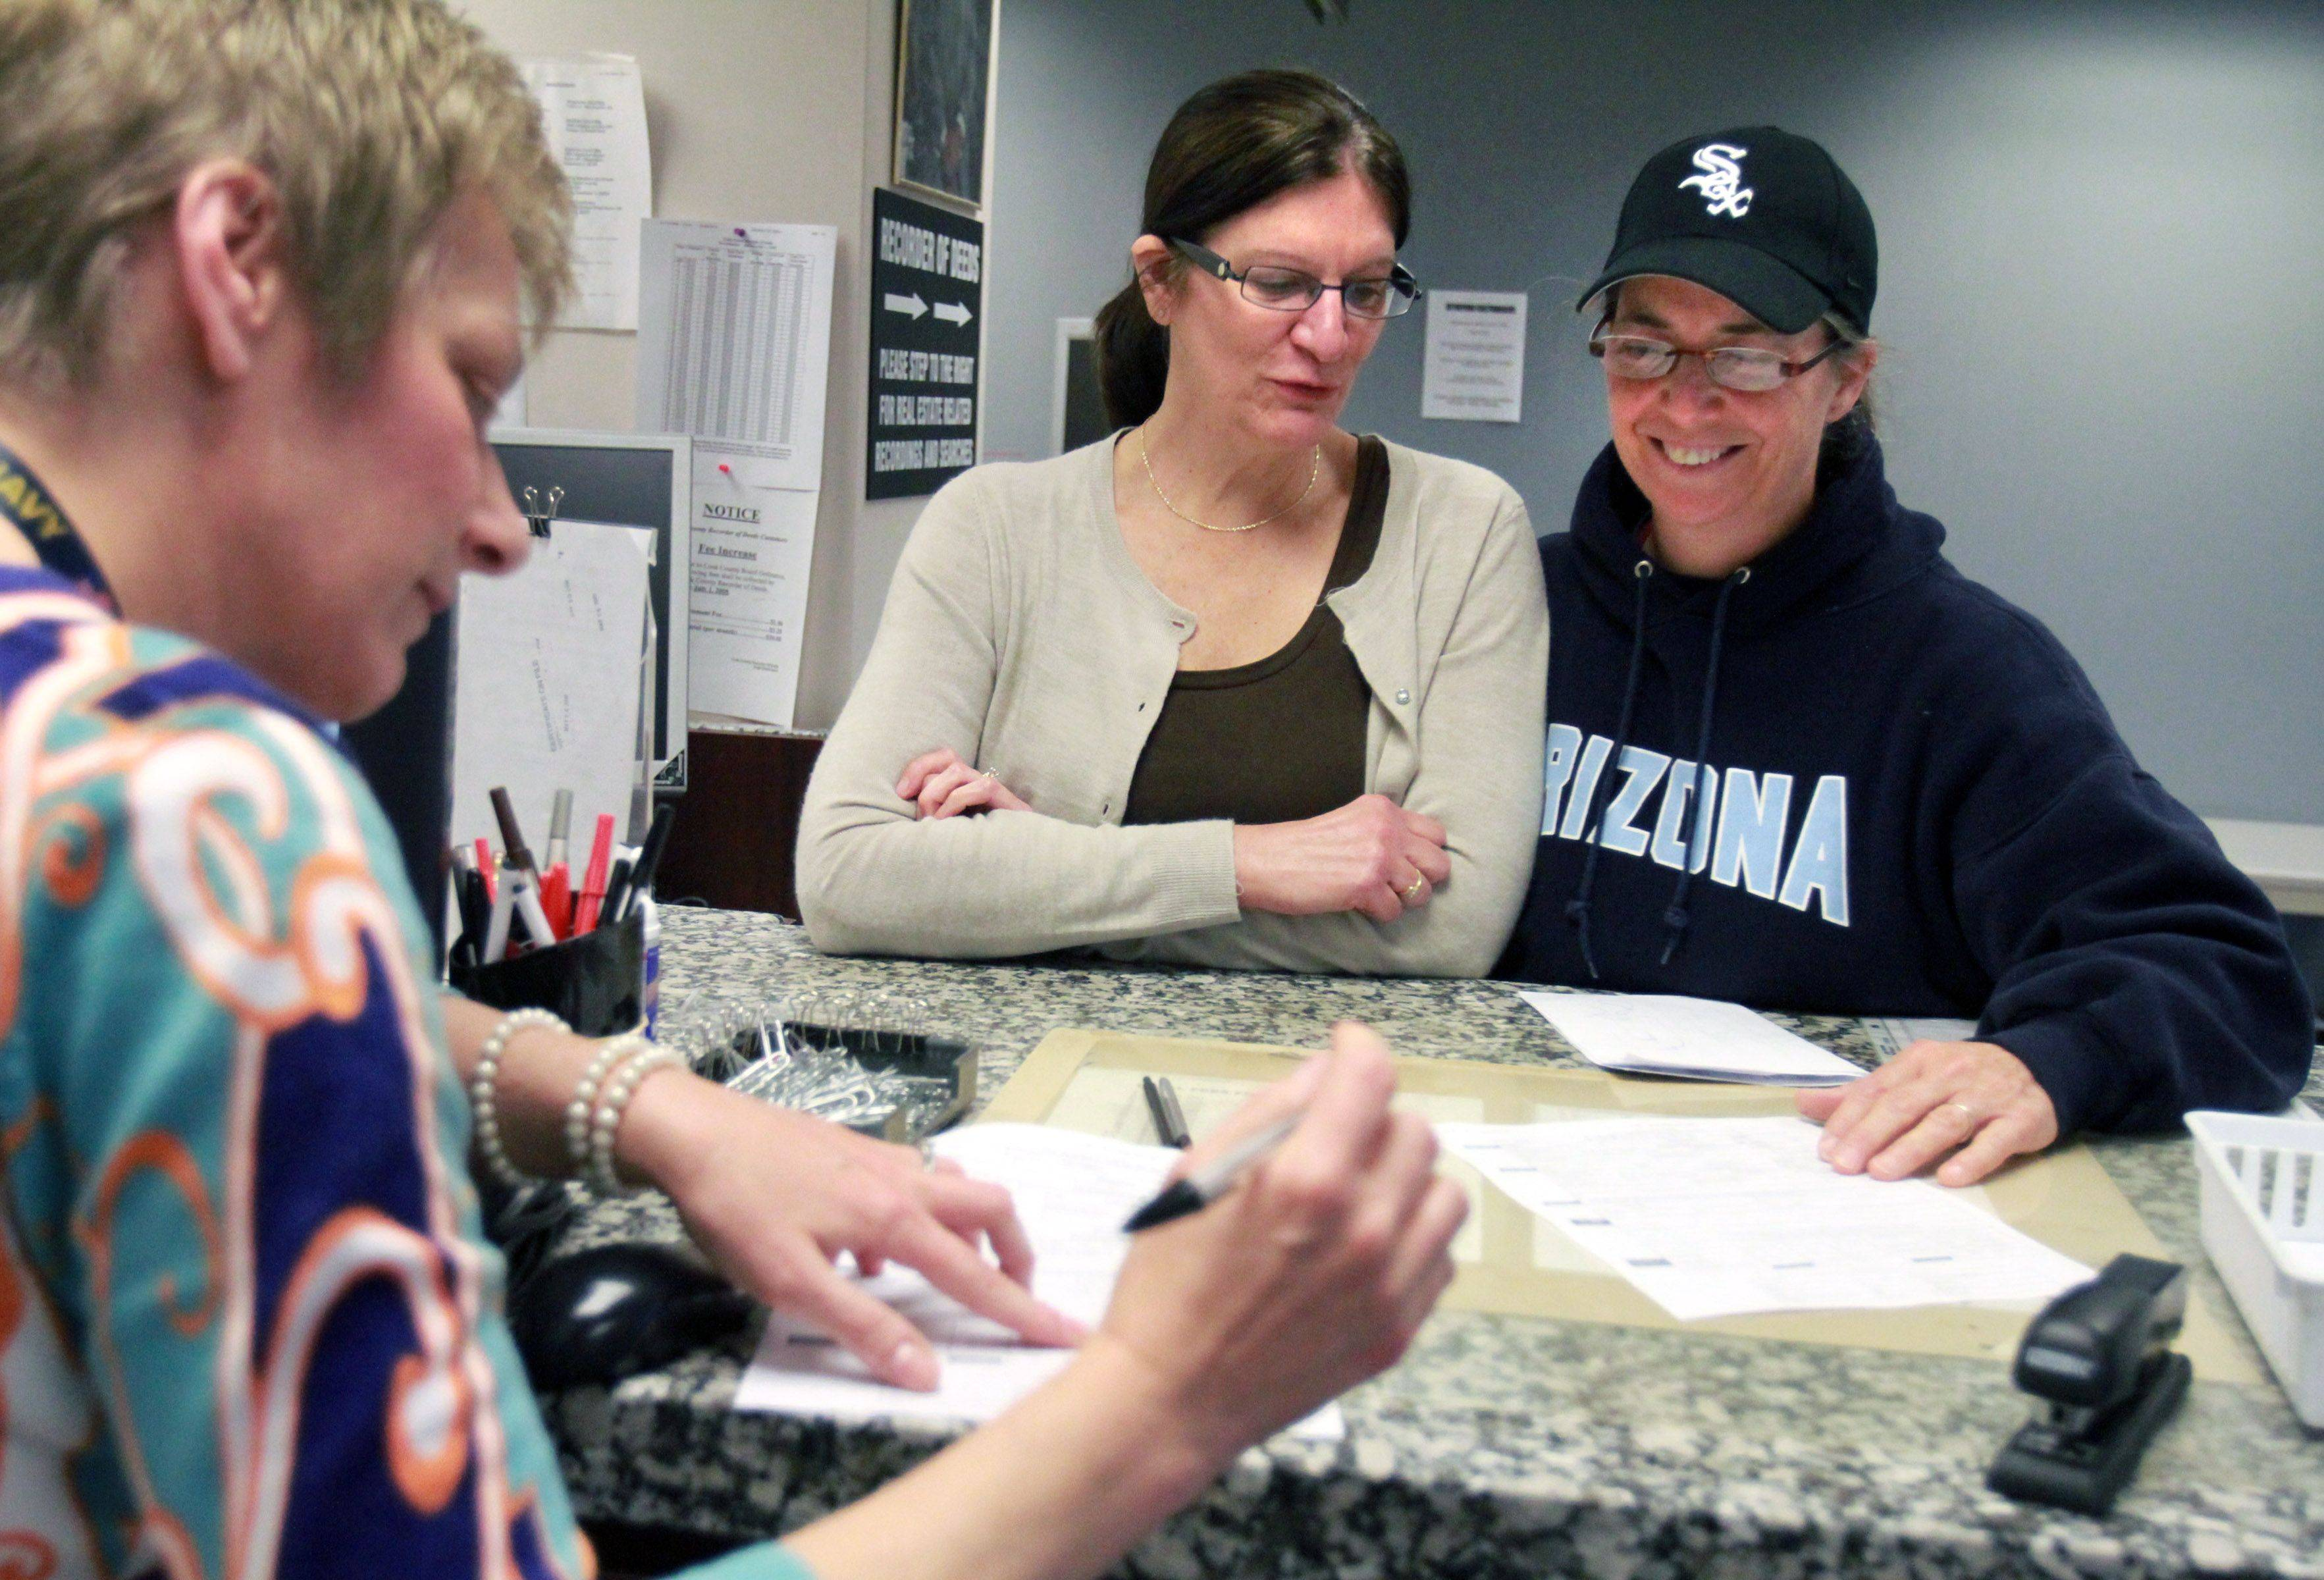 Couples line up in suburbs for civil unions